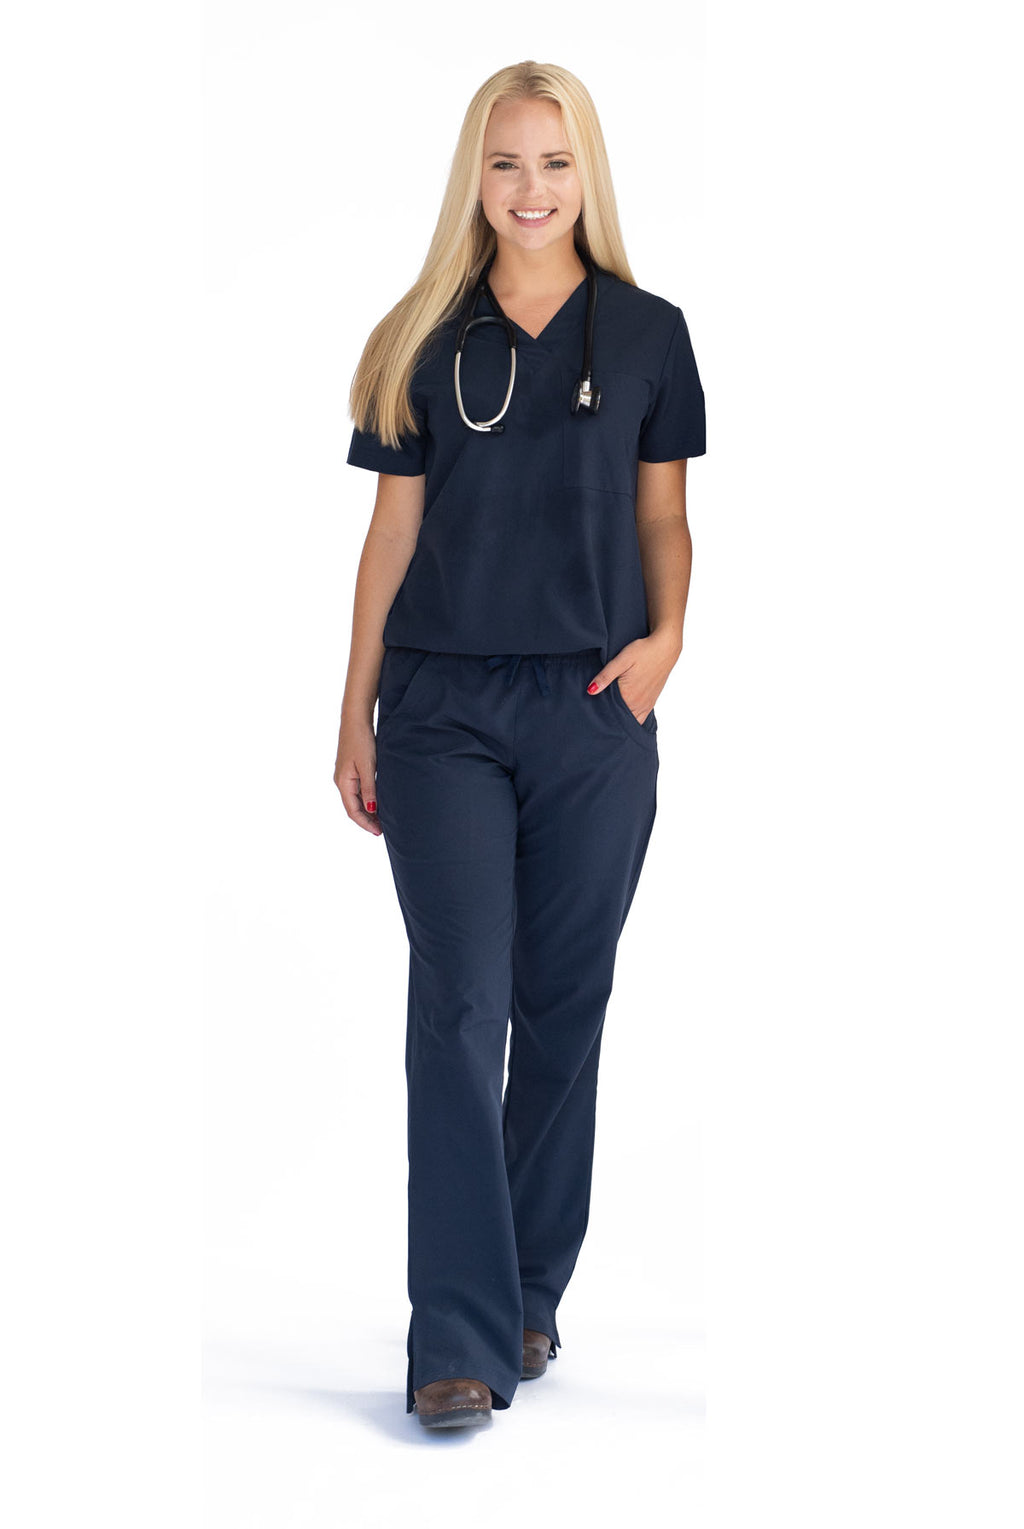 Amelia Athletic Scrub Top with Custom South University embroidery